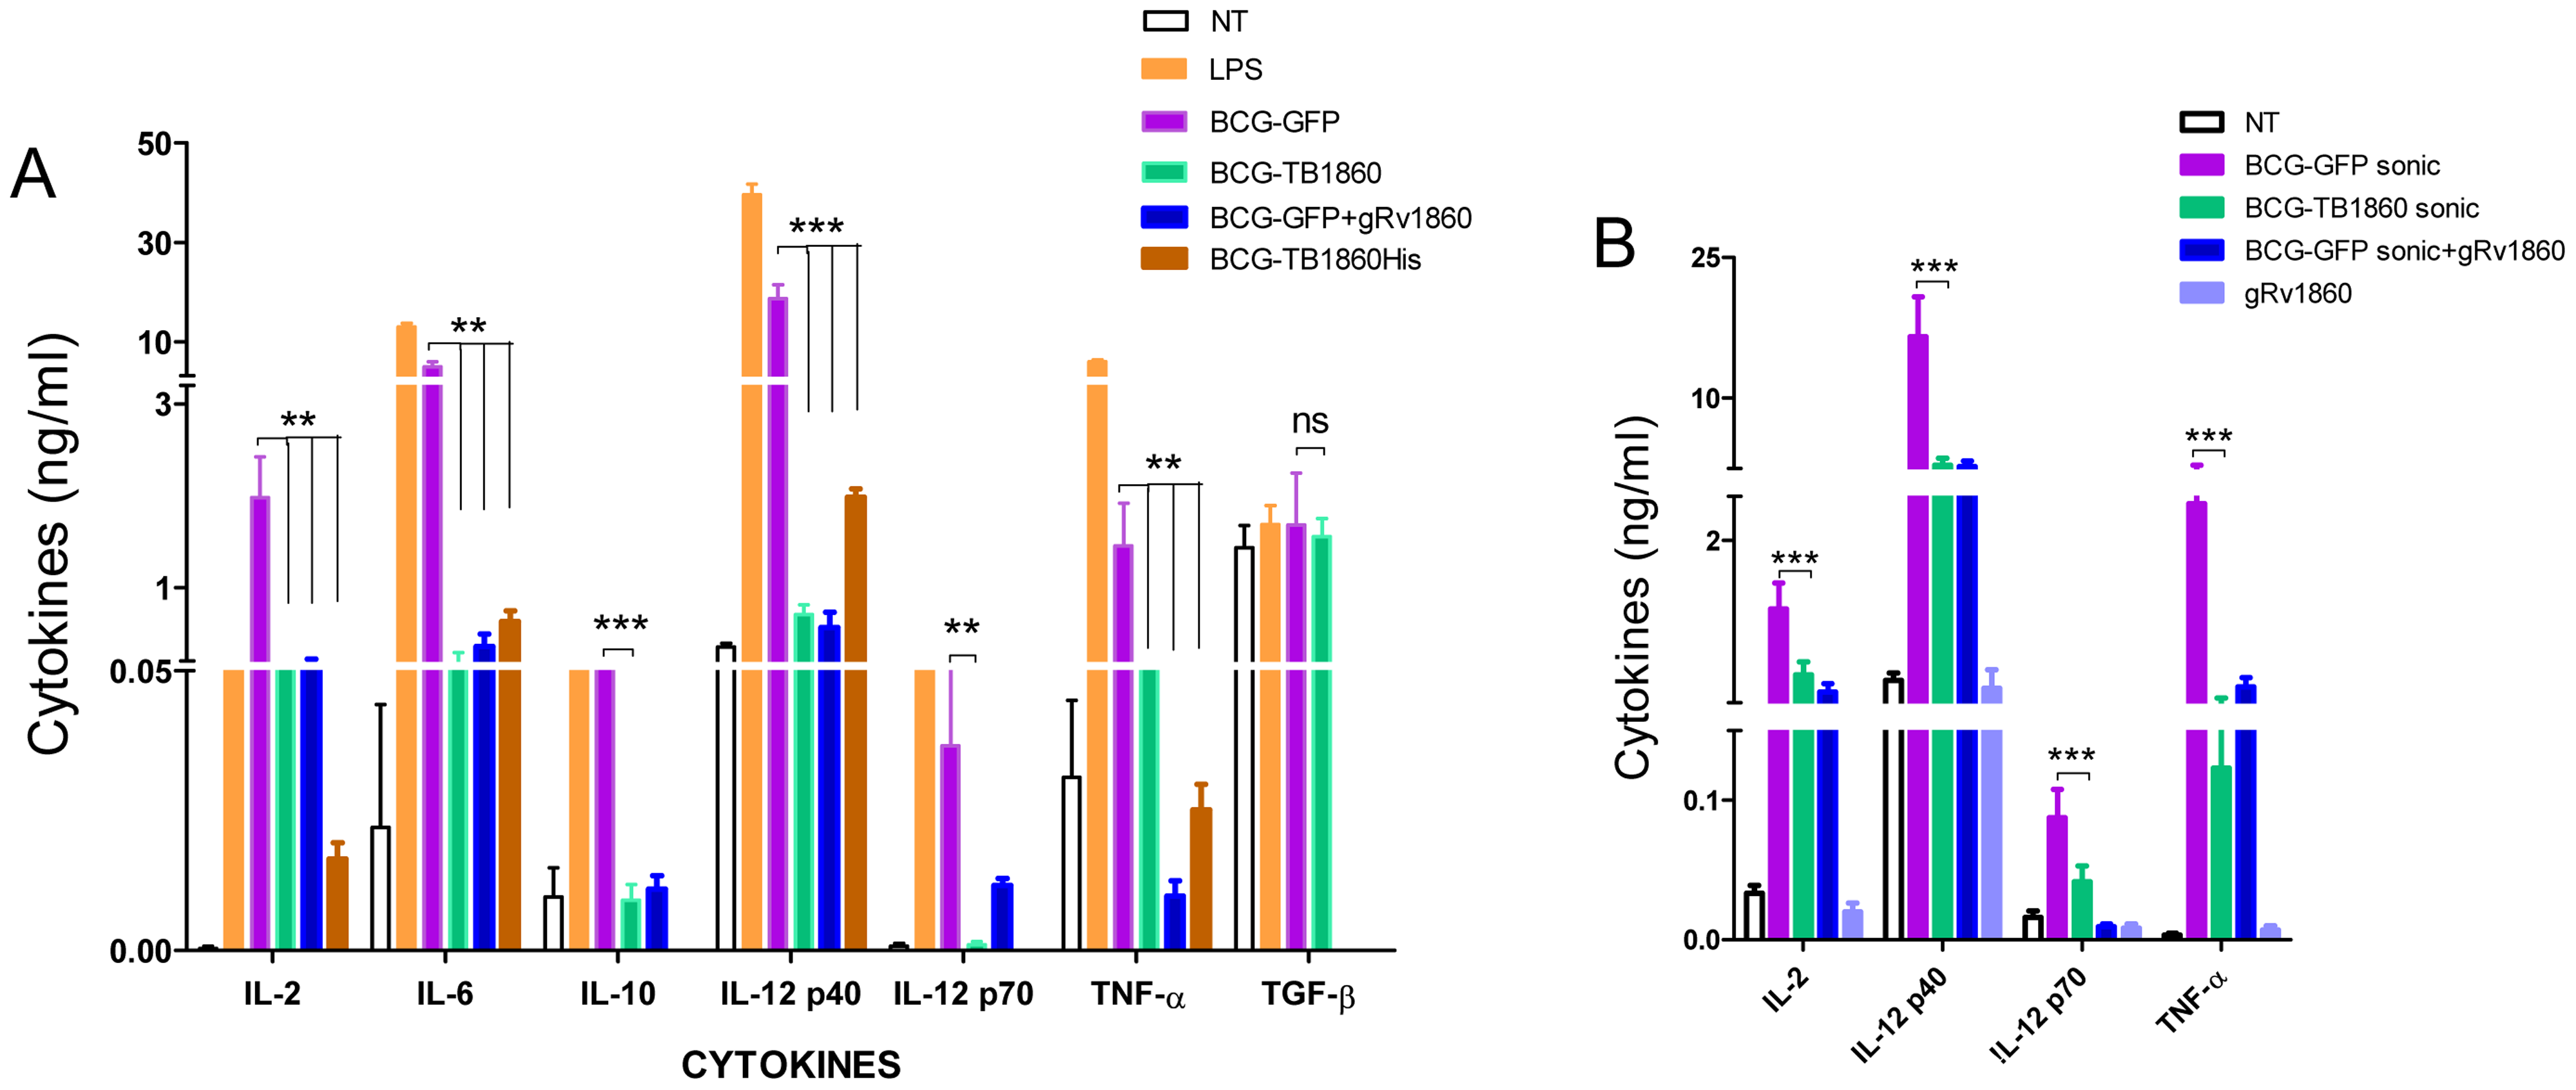 Expression of MTB Rv1860 in BCG suppressed cytokine secretion from mouse BMDC.